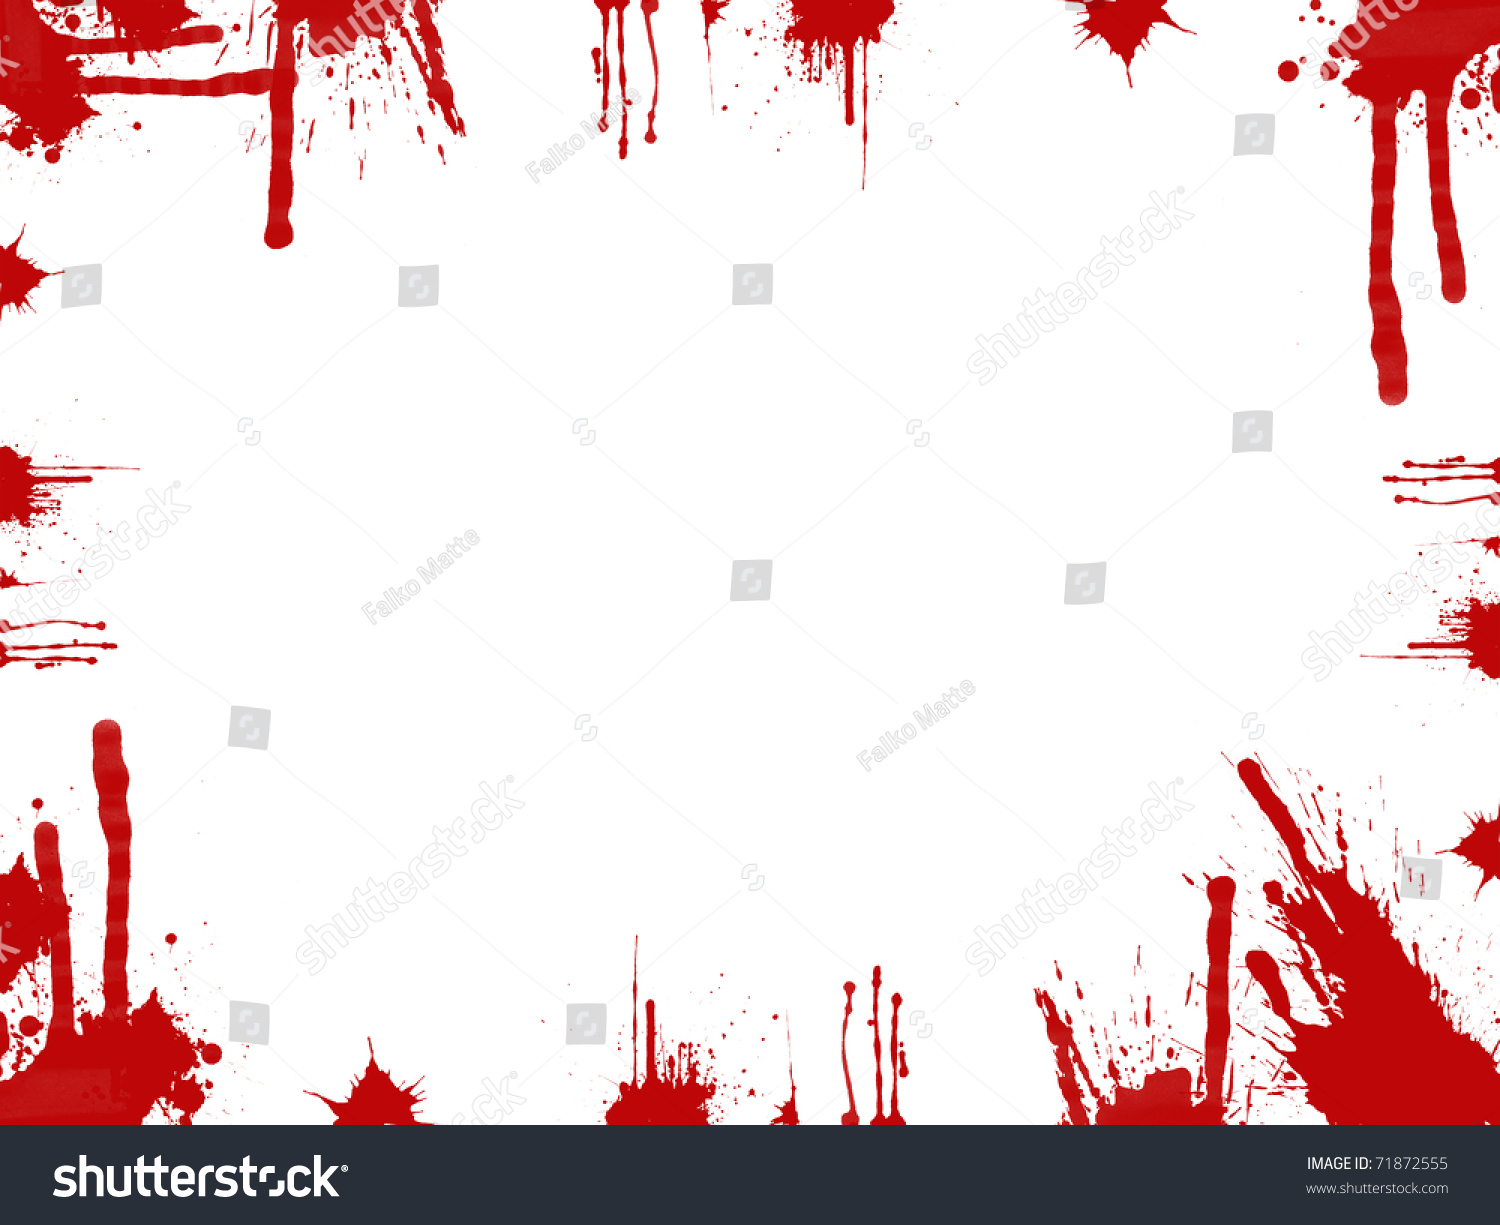 bloody frame stock photo 71872555 shutterstock